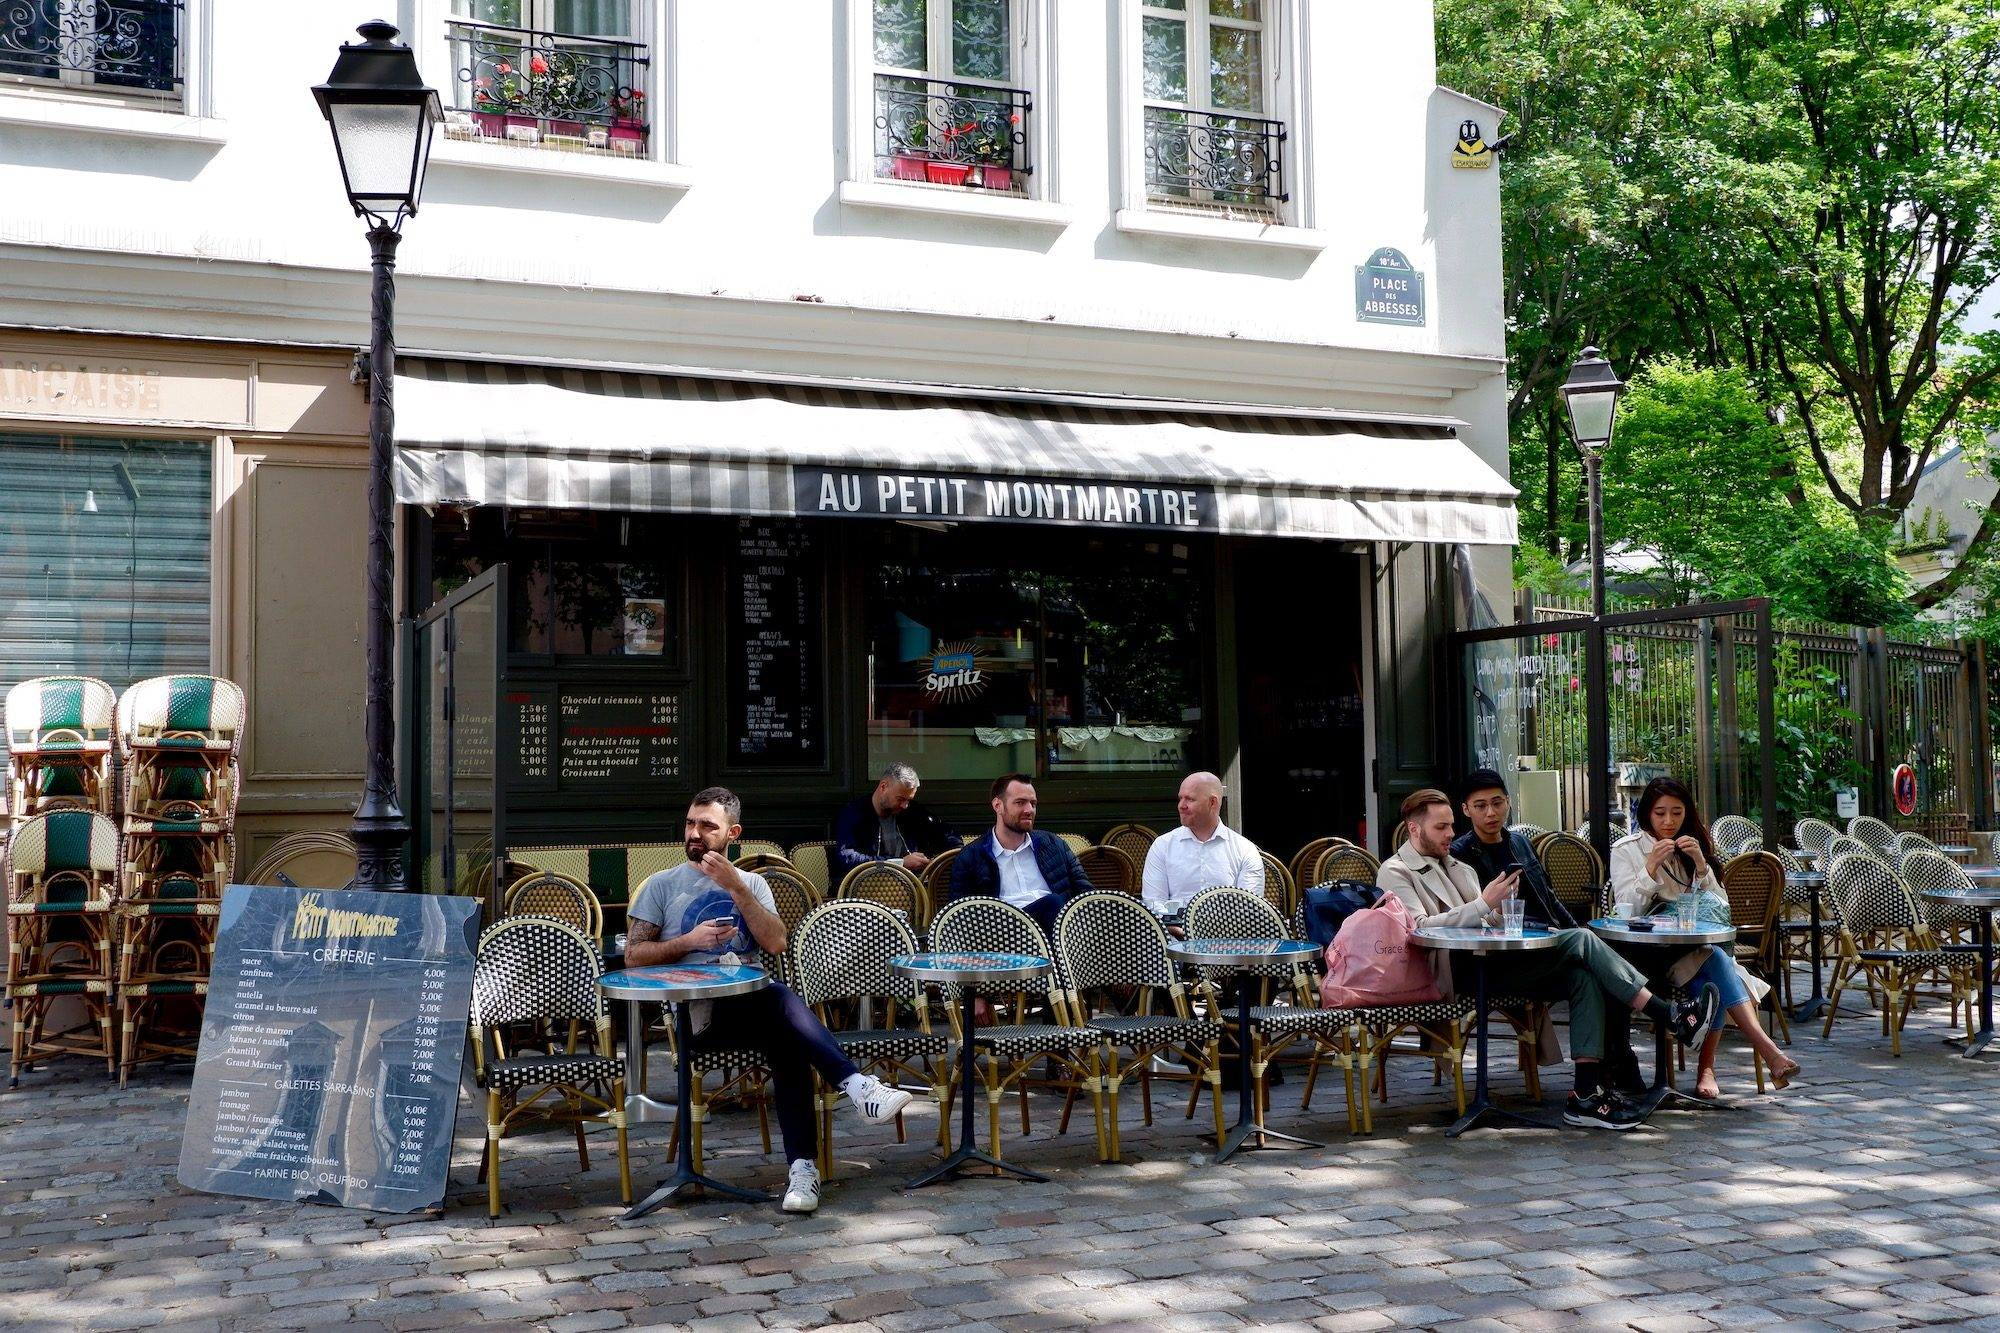 Au Petit Montmartre in Paris is one of those tiny cafés where locals love to sit outside on the terrace to enjoy the sunshine.